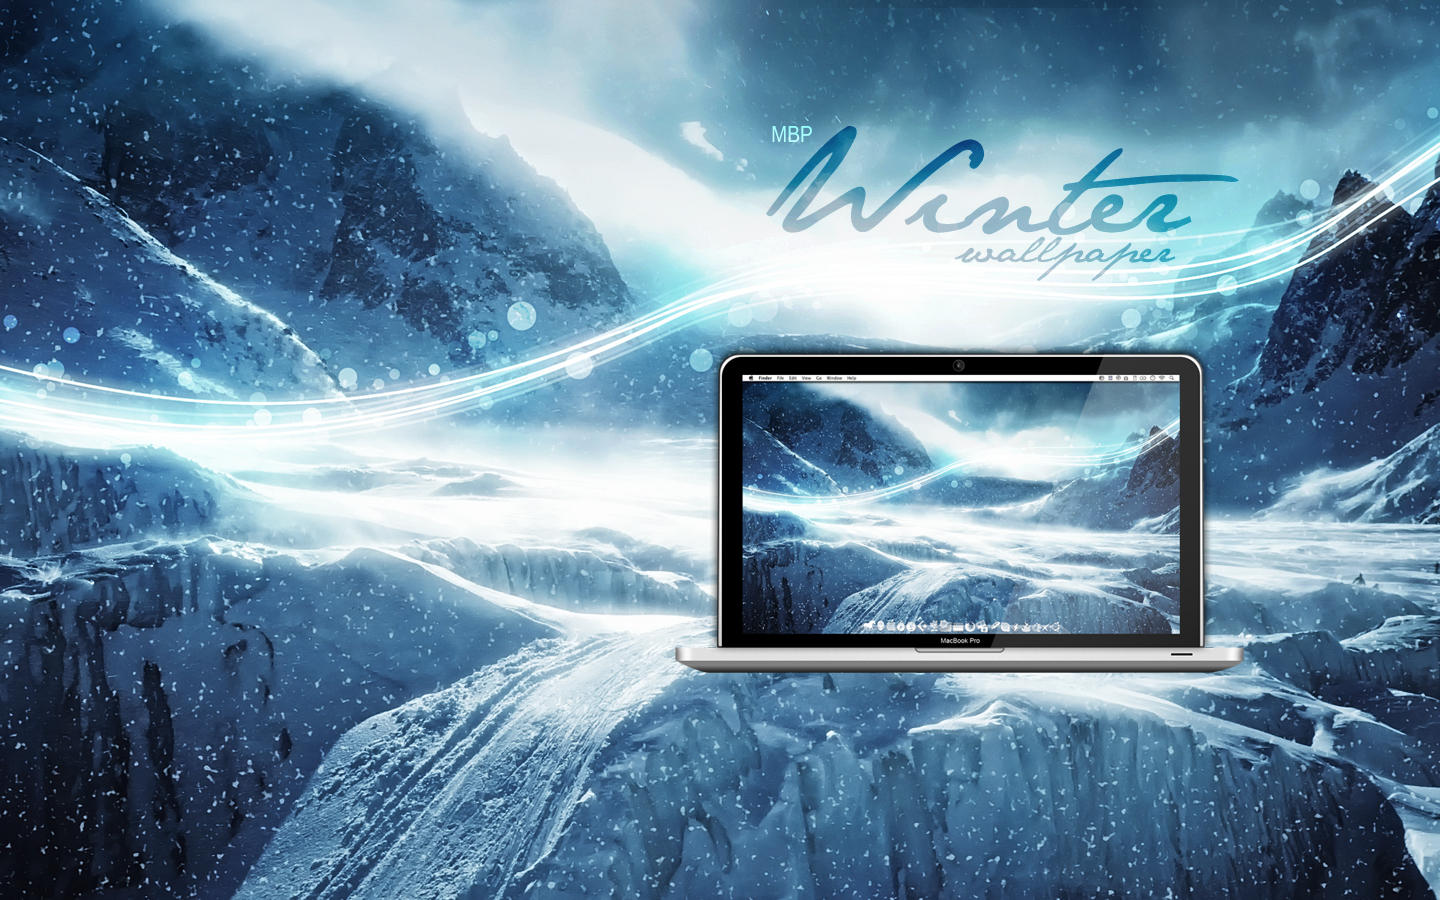 MBP Winter Wallpaper by Martz90